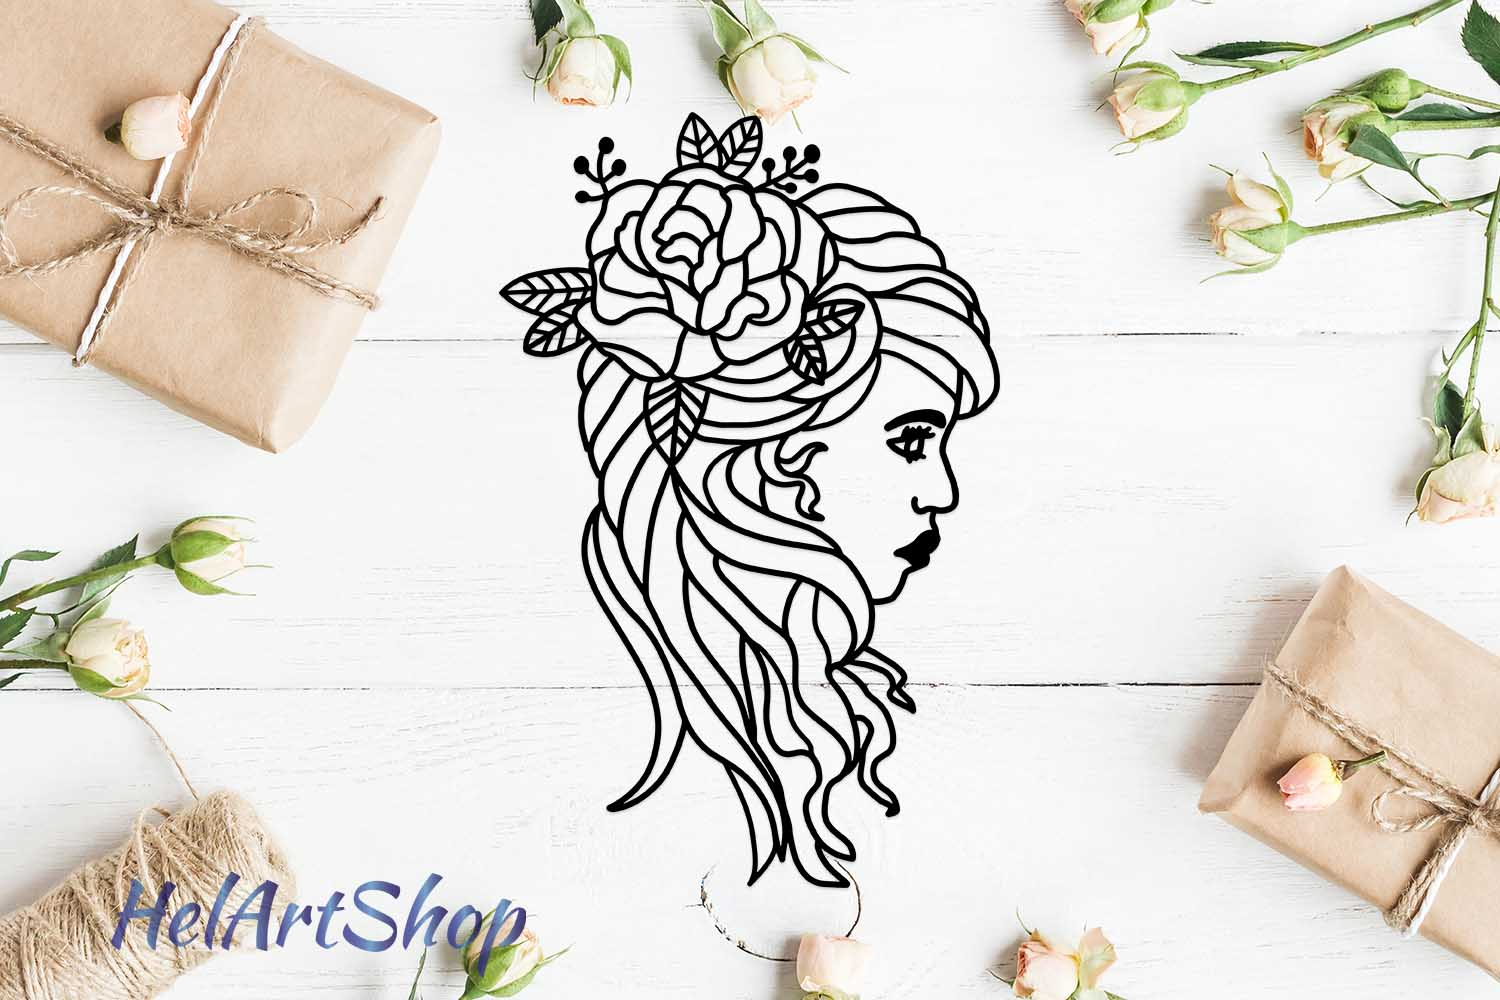 Download Free Woman Face With Flowers Graphic By Helartshop Creative Fabrica for Cricut Explore, Silhouette and other cutting machines.